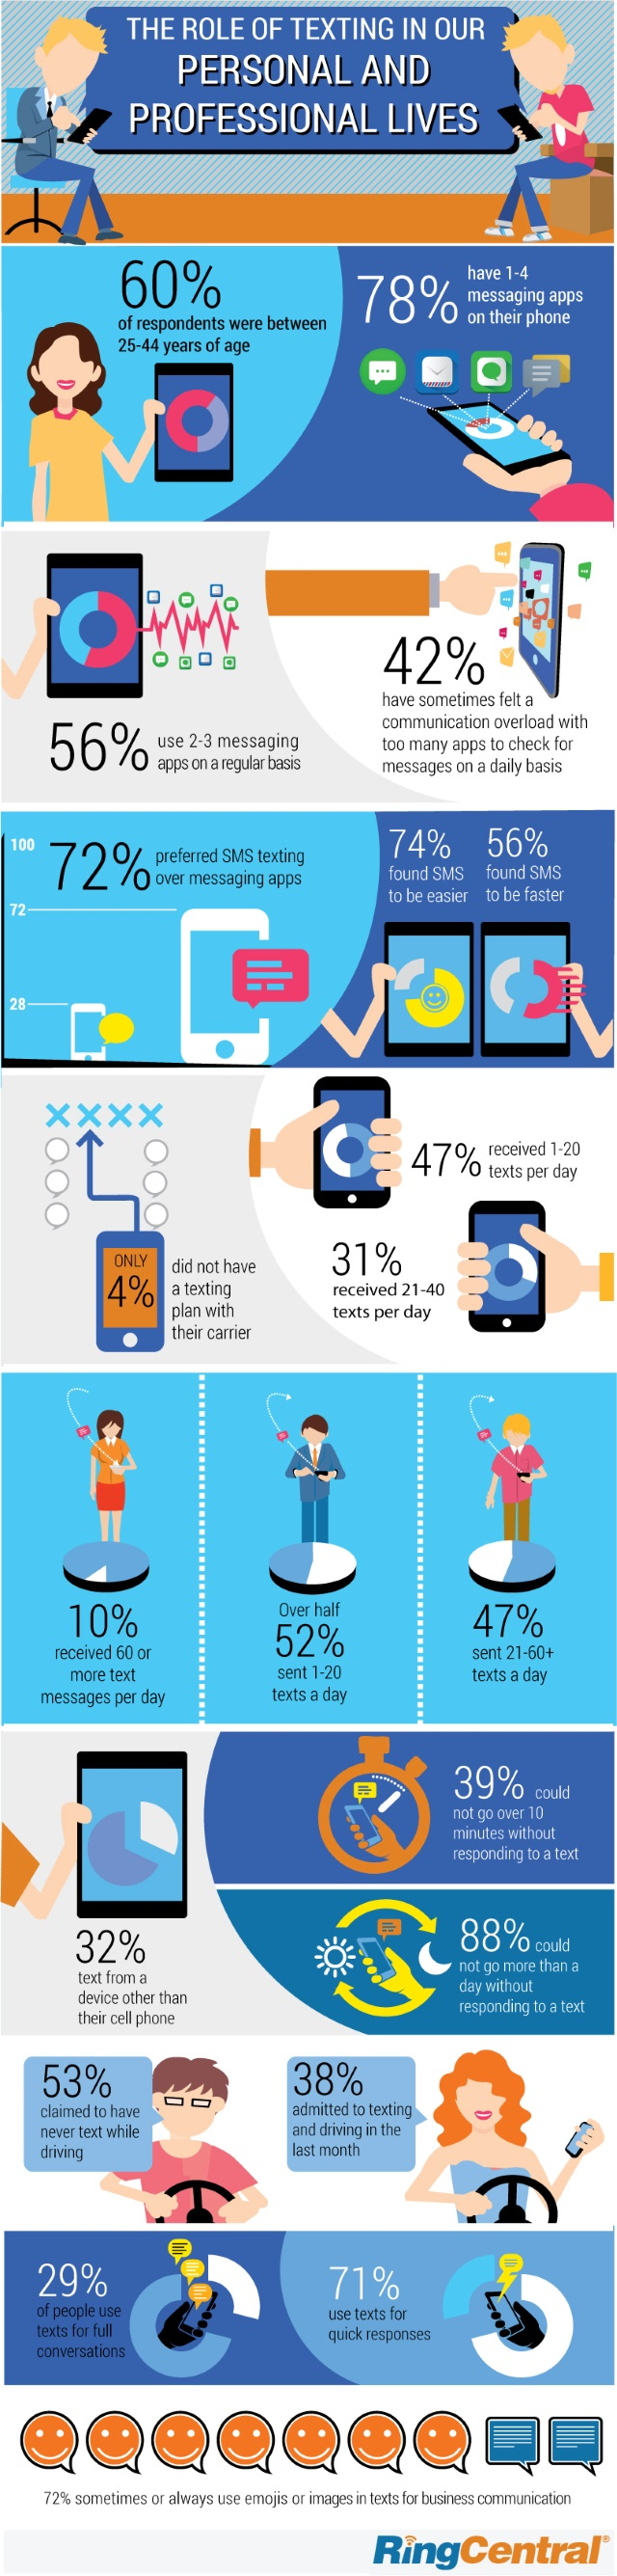 RingCentral Texting Infographic